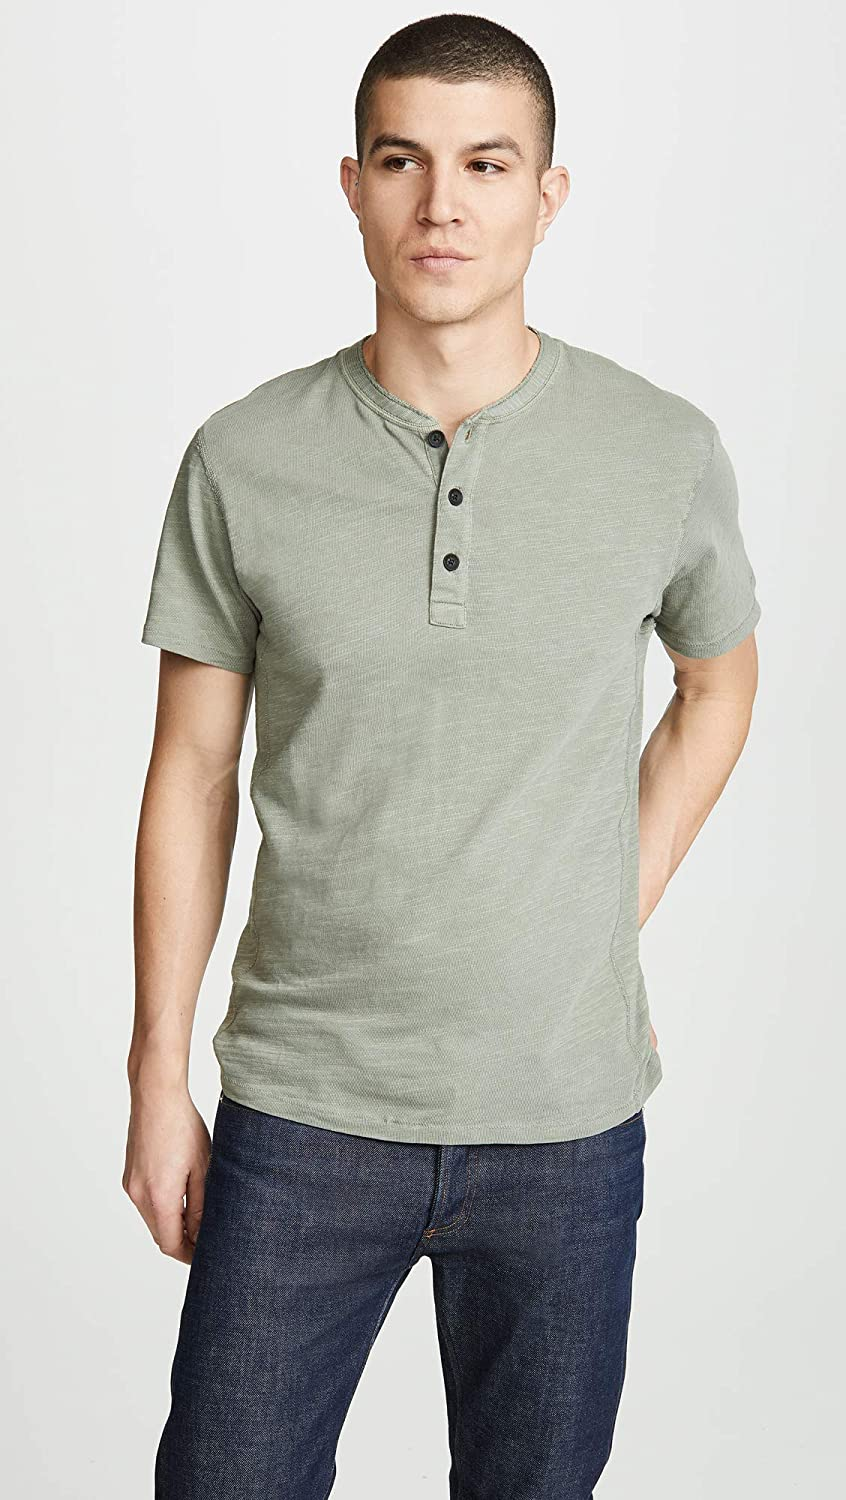 42a0b1fedbf Rag & Bone Standard Issue Men's Classic Short Sleeve Henley at ...